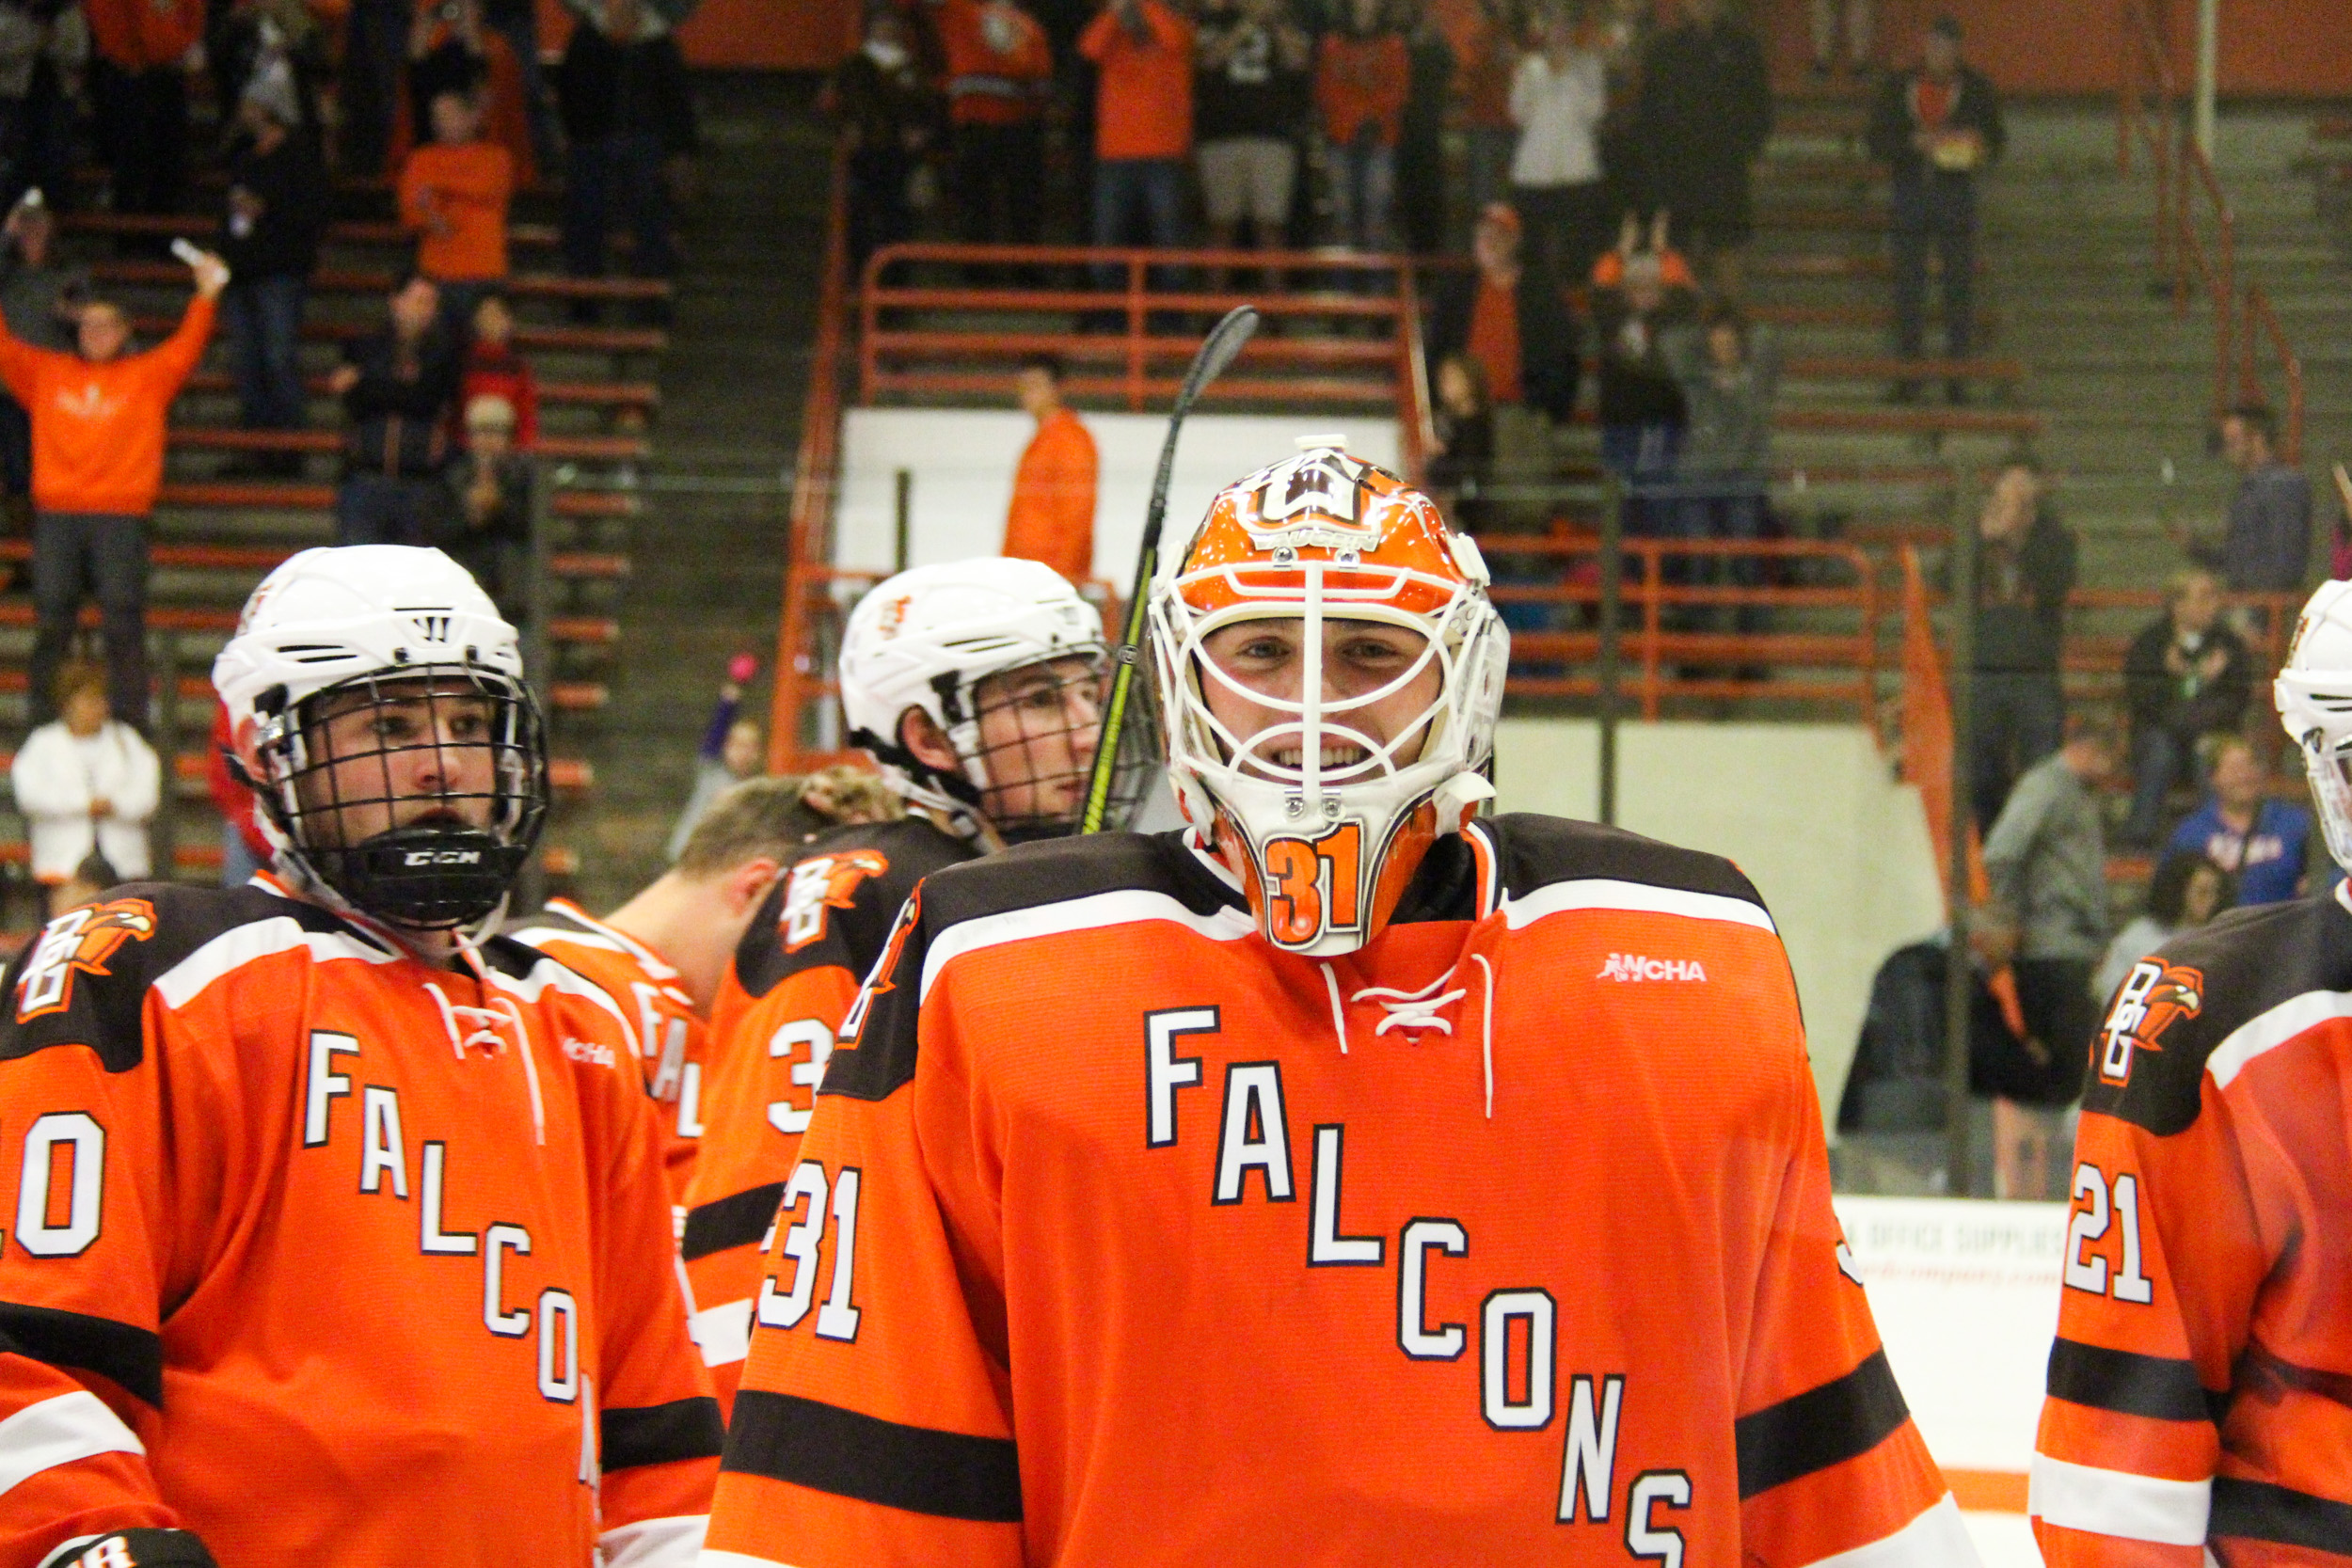 Rivalry renewed: Falcons handle Spartans 4-1